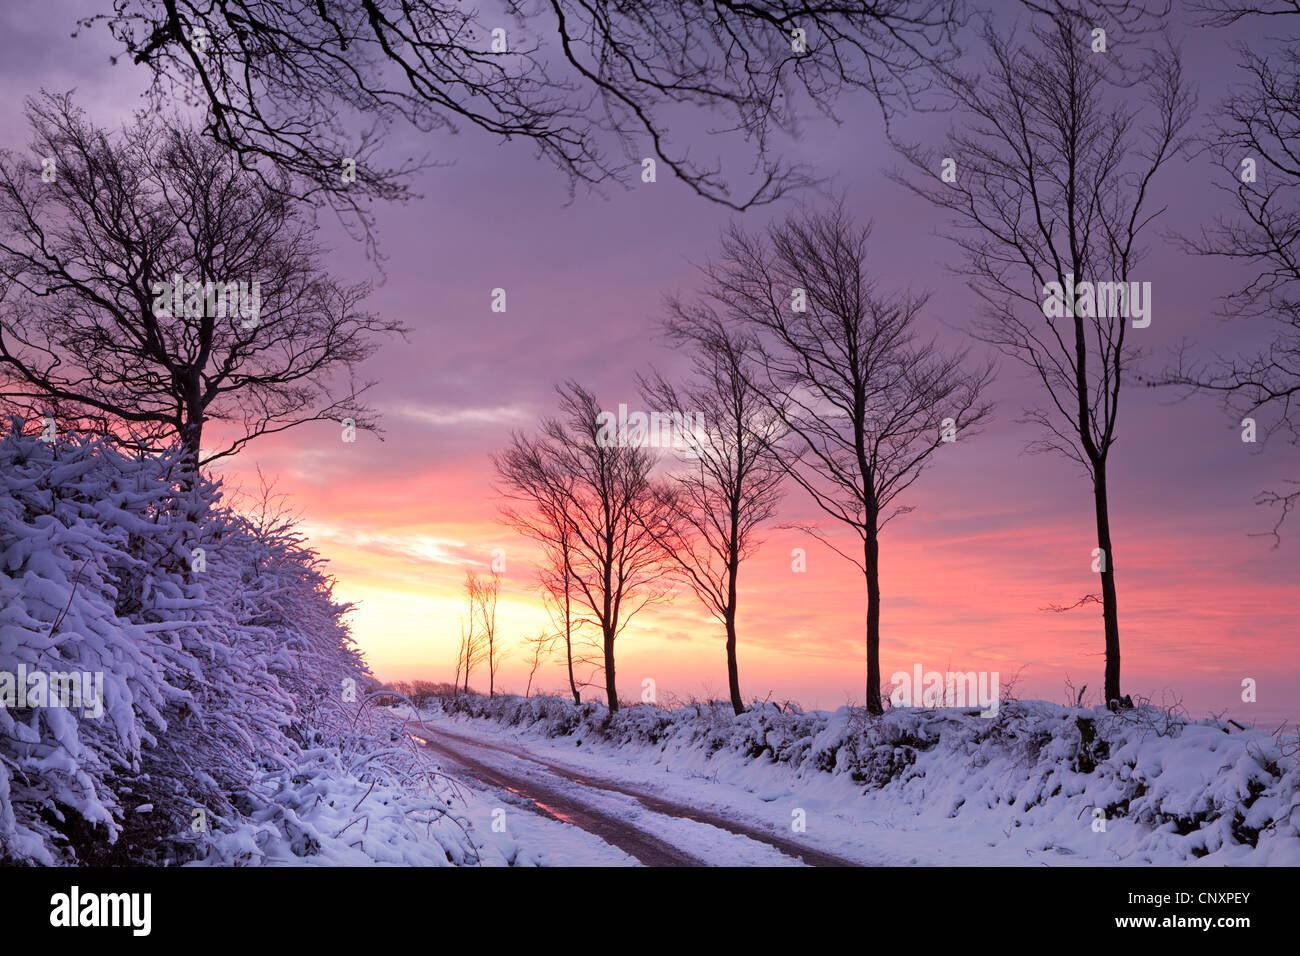 Snow covered country lane at dawn, Exmoor National Park, Somerset, England. Winter (January) 2012. - Stock Image